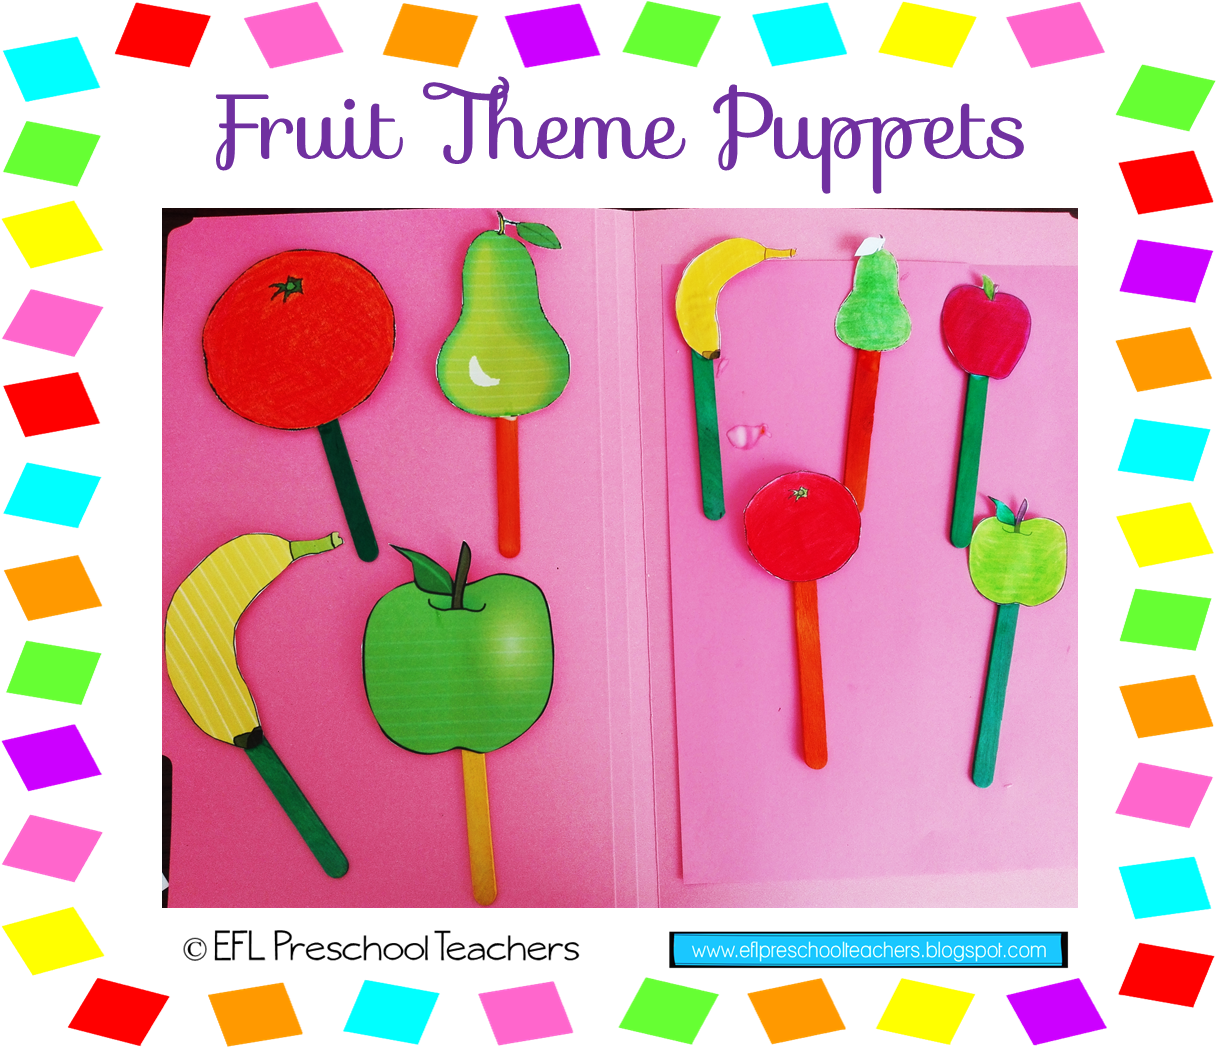 Esl Efl Preschool Teachers Fruit Theme For The Preschool Ell